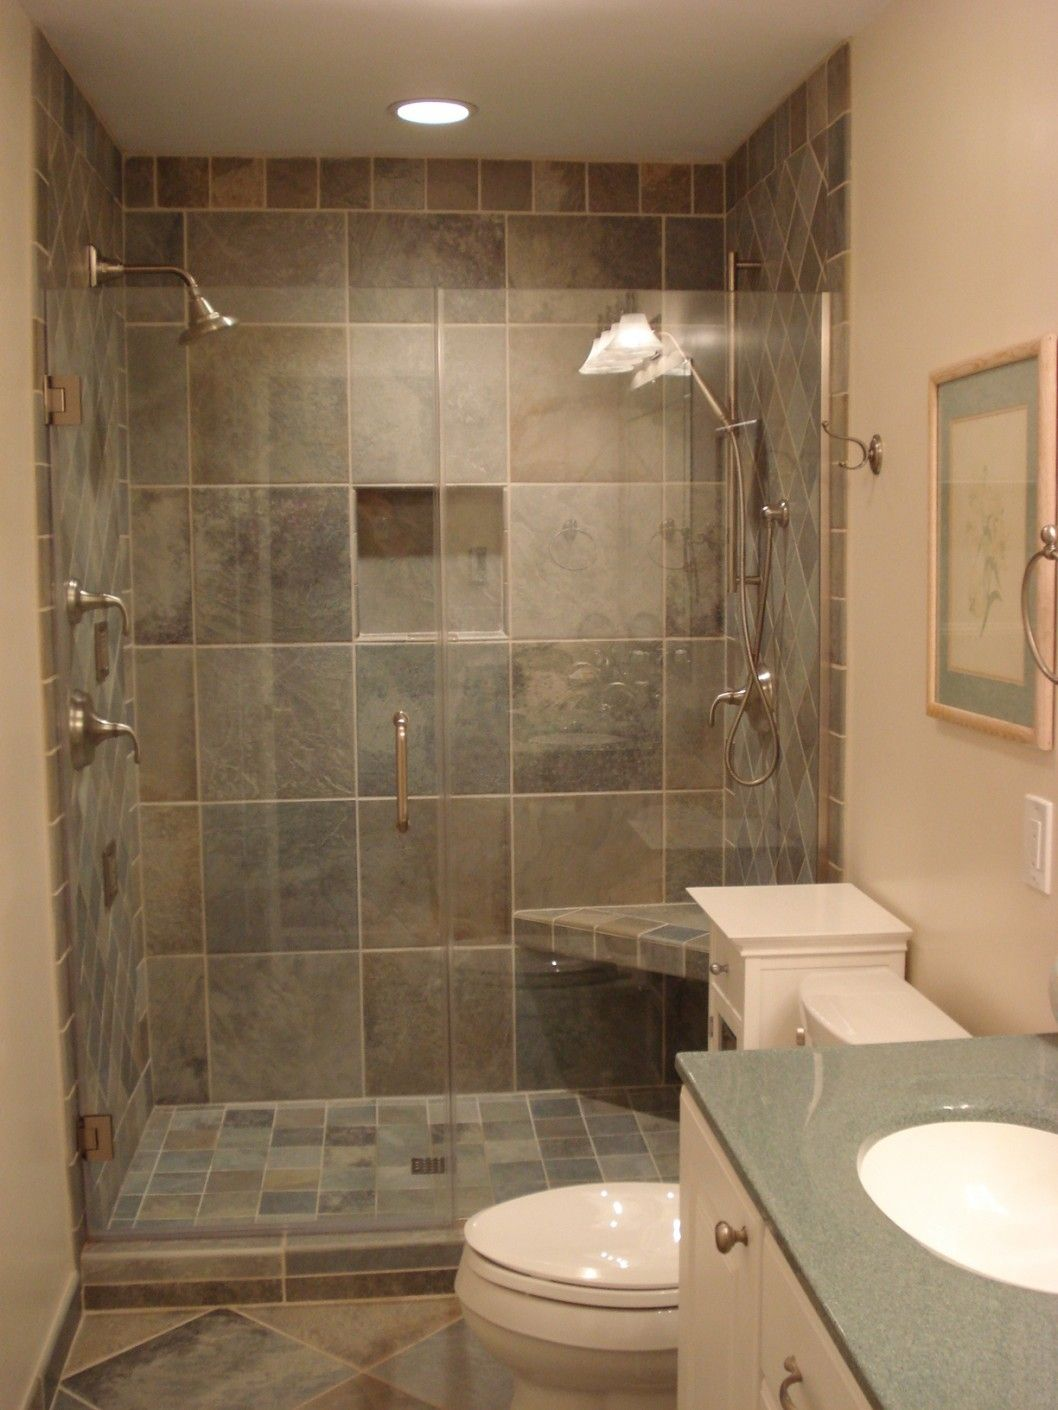 Best Of Ideas Remodel Bathroom Tub And How To My